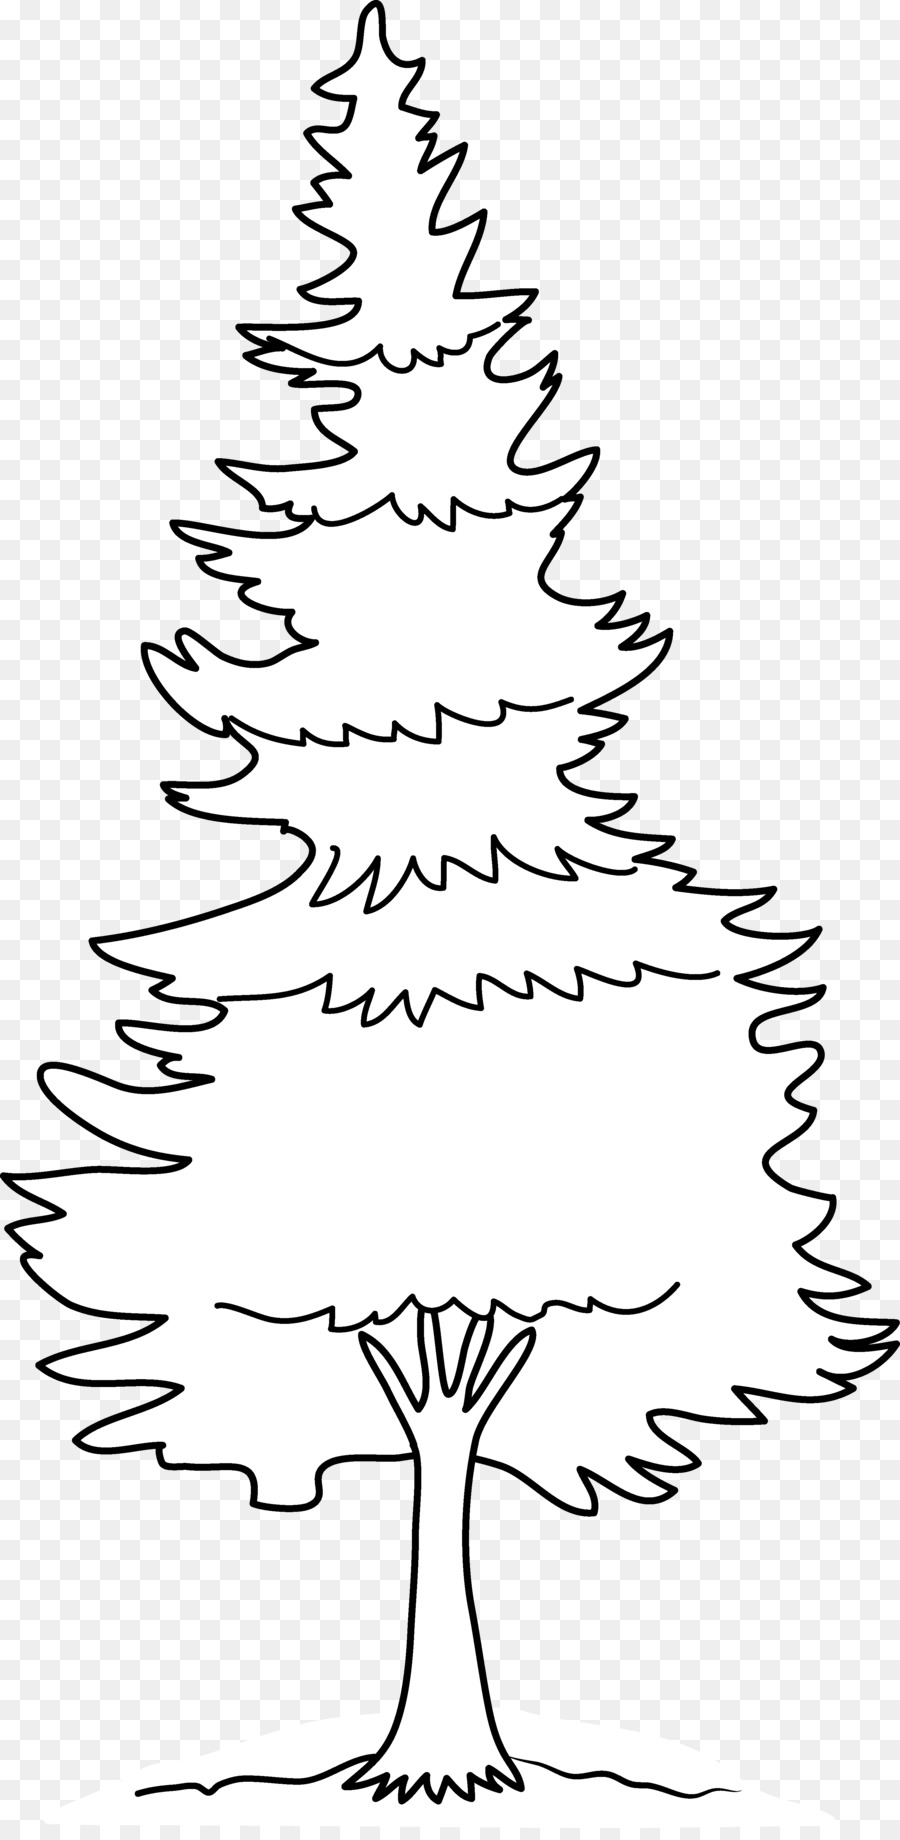 Christmas Images Cartoon Black And White.Christmas Tree Line Drawing Clipart Drawing Tree White